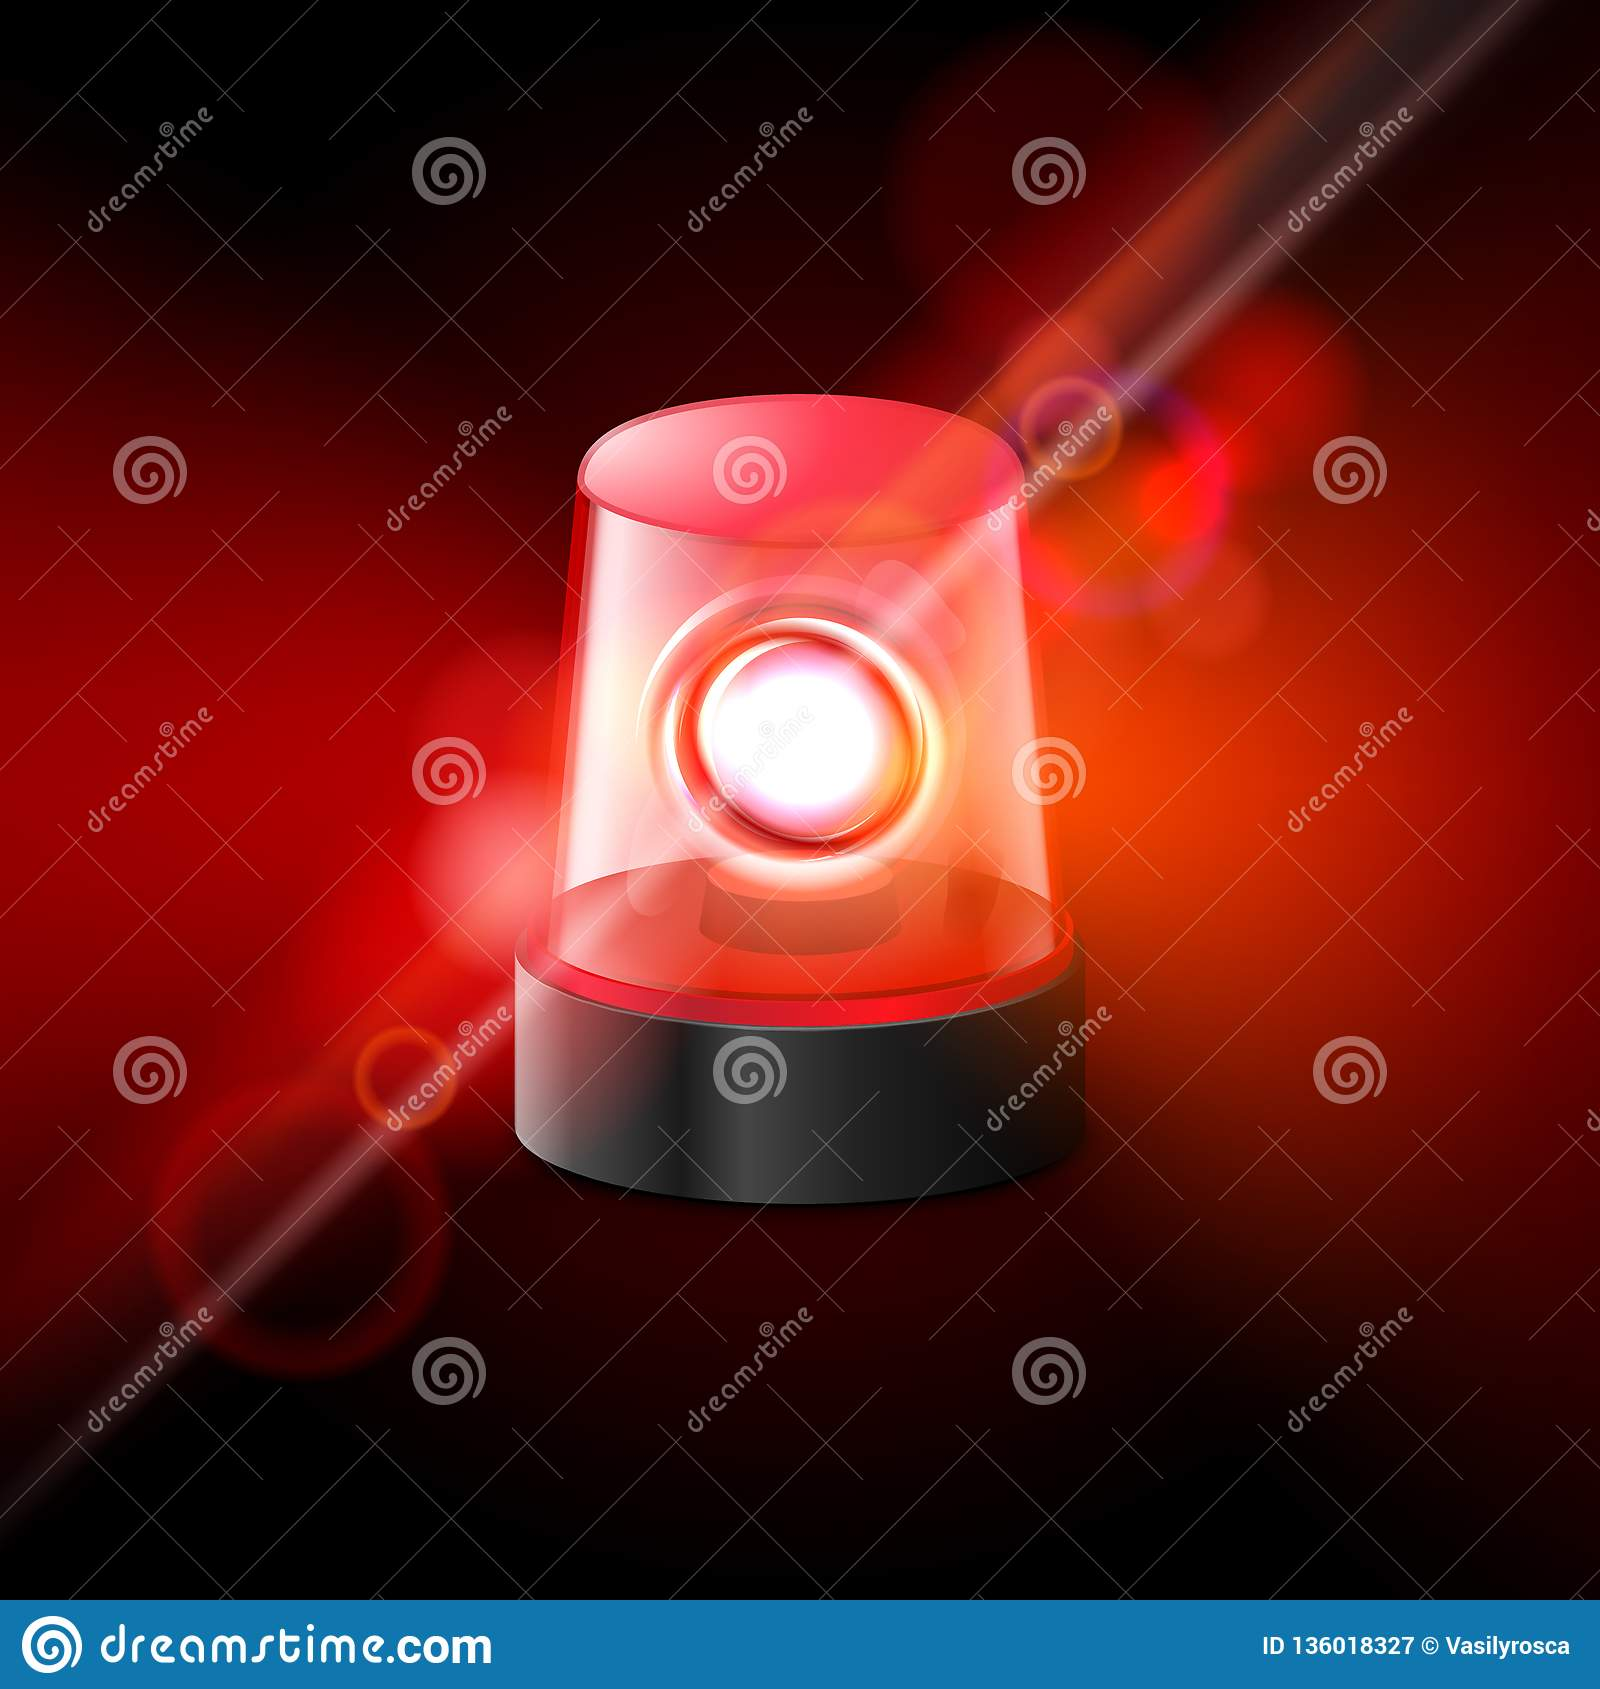 red flashing police beacon